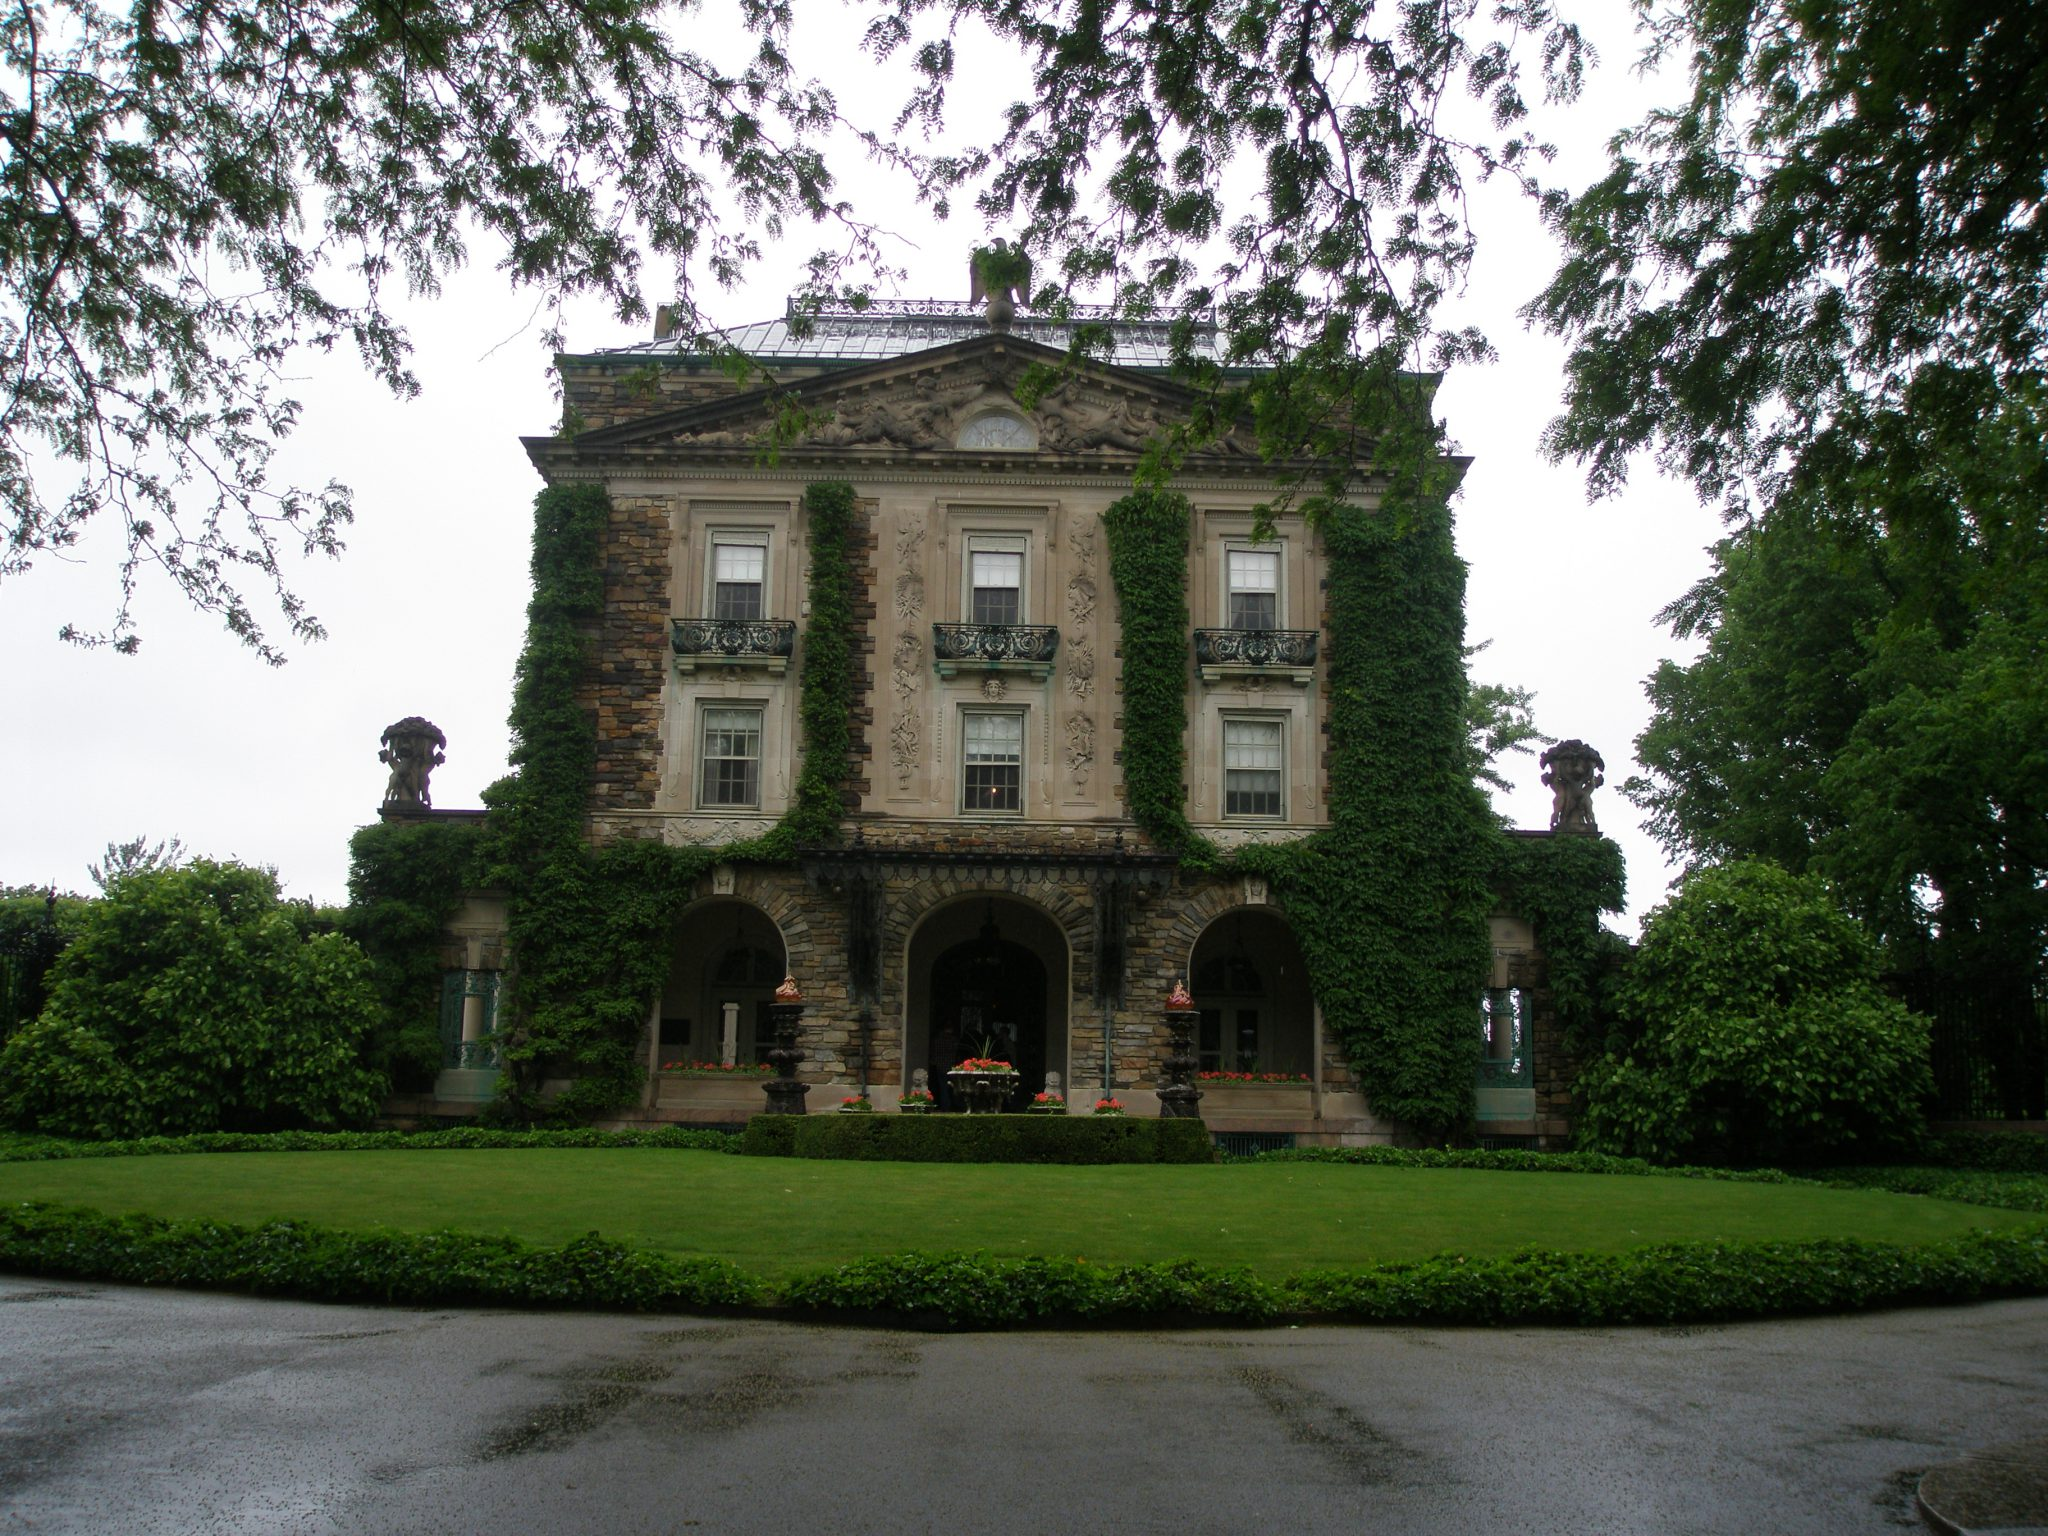 The Forecourt Facade of the Main House